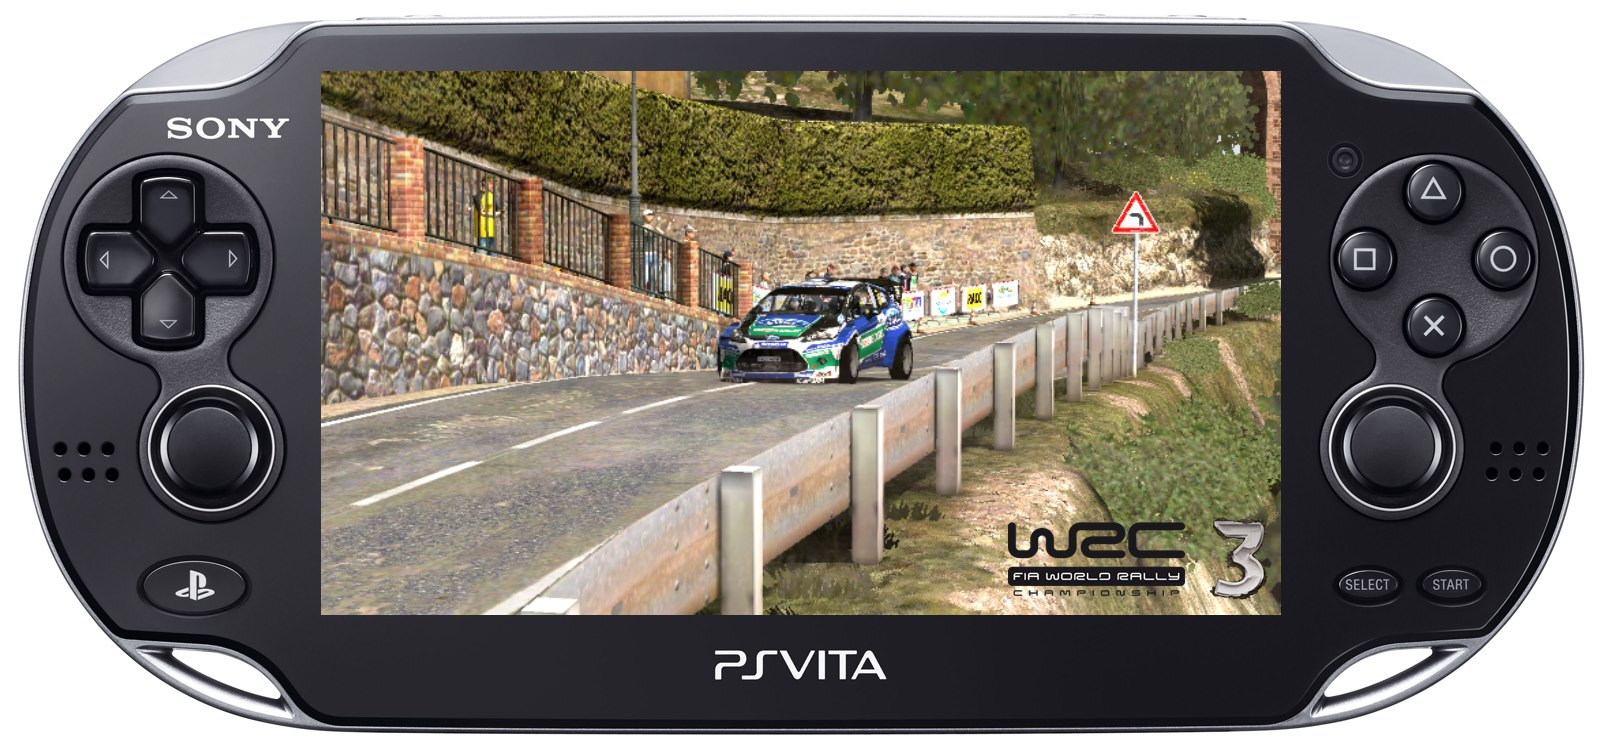 WRC3 Vita first look hands-on